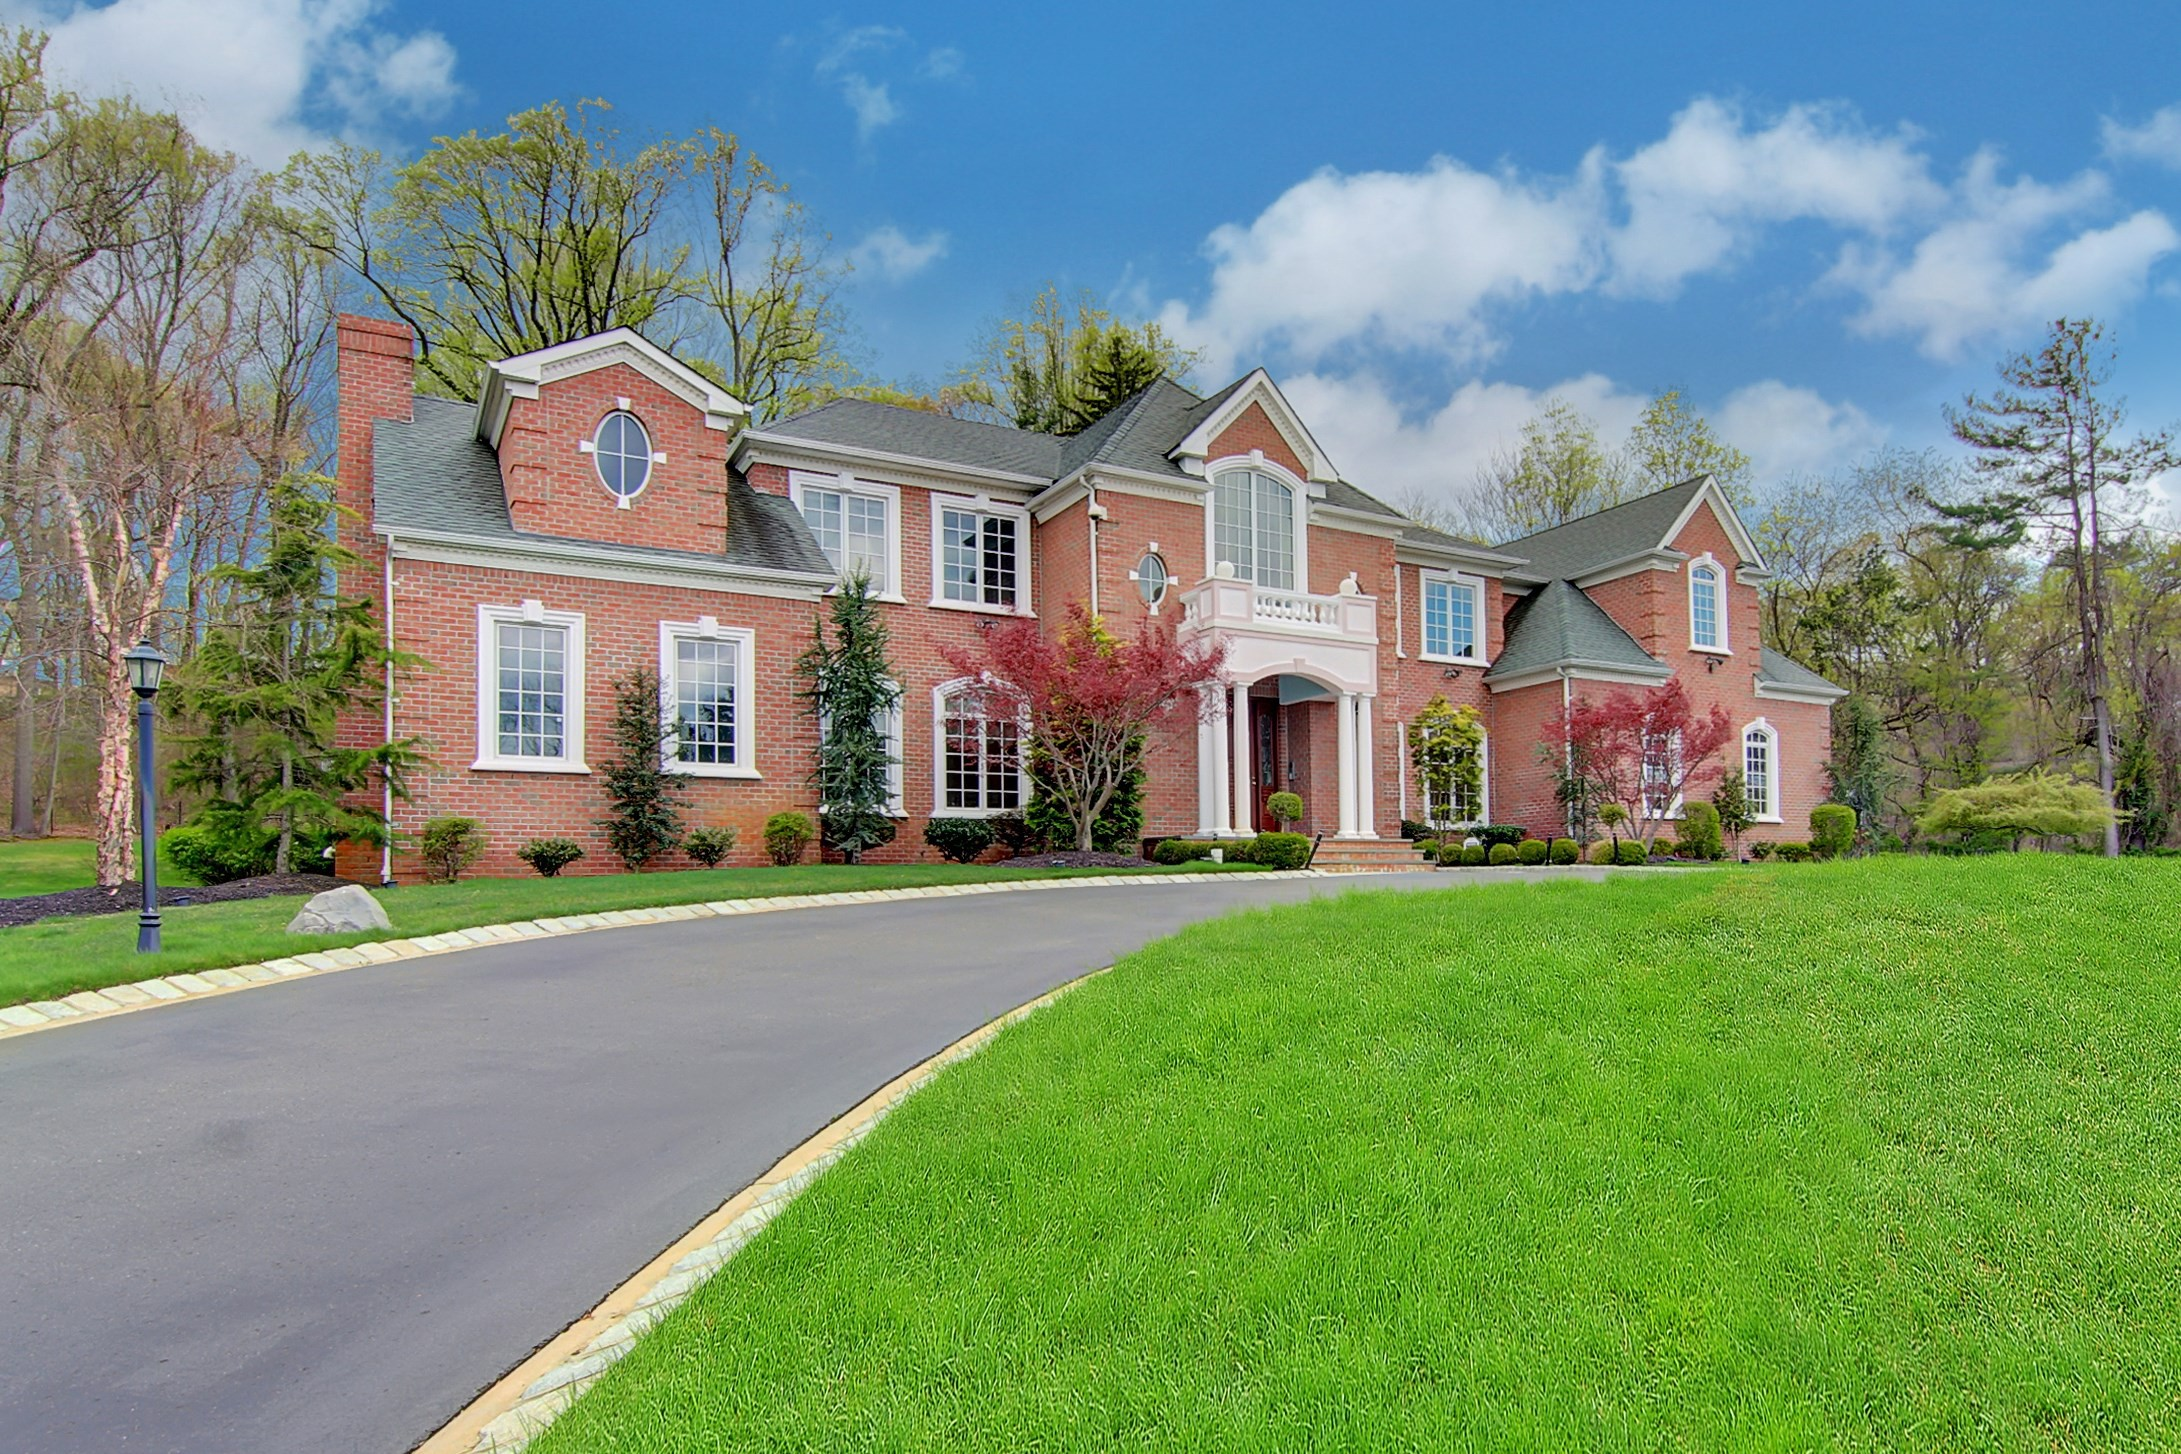 Maison unifamiliale pour l Vente à Majestic Estate 216 Holland Road Holmdel, New Jersey 07733 États-Unis